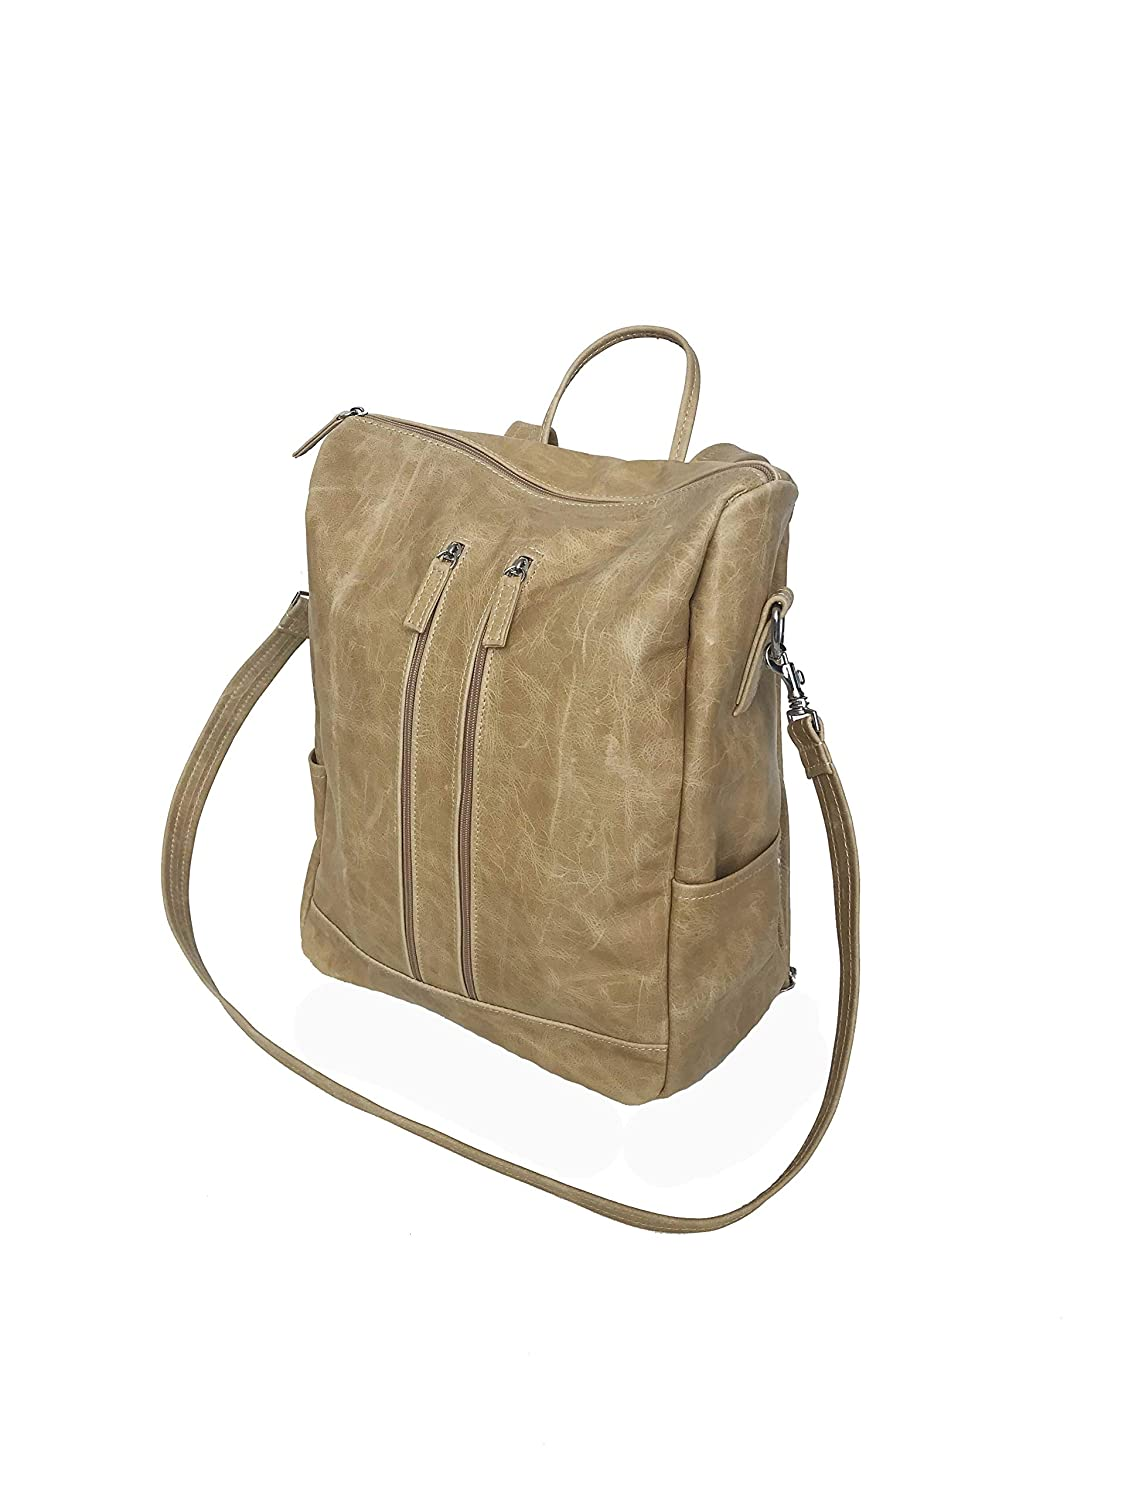 d3e5d1e8f938 Amazon.com  Fgalaze Distressed Camel Leather Backpack Bag